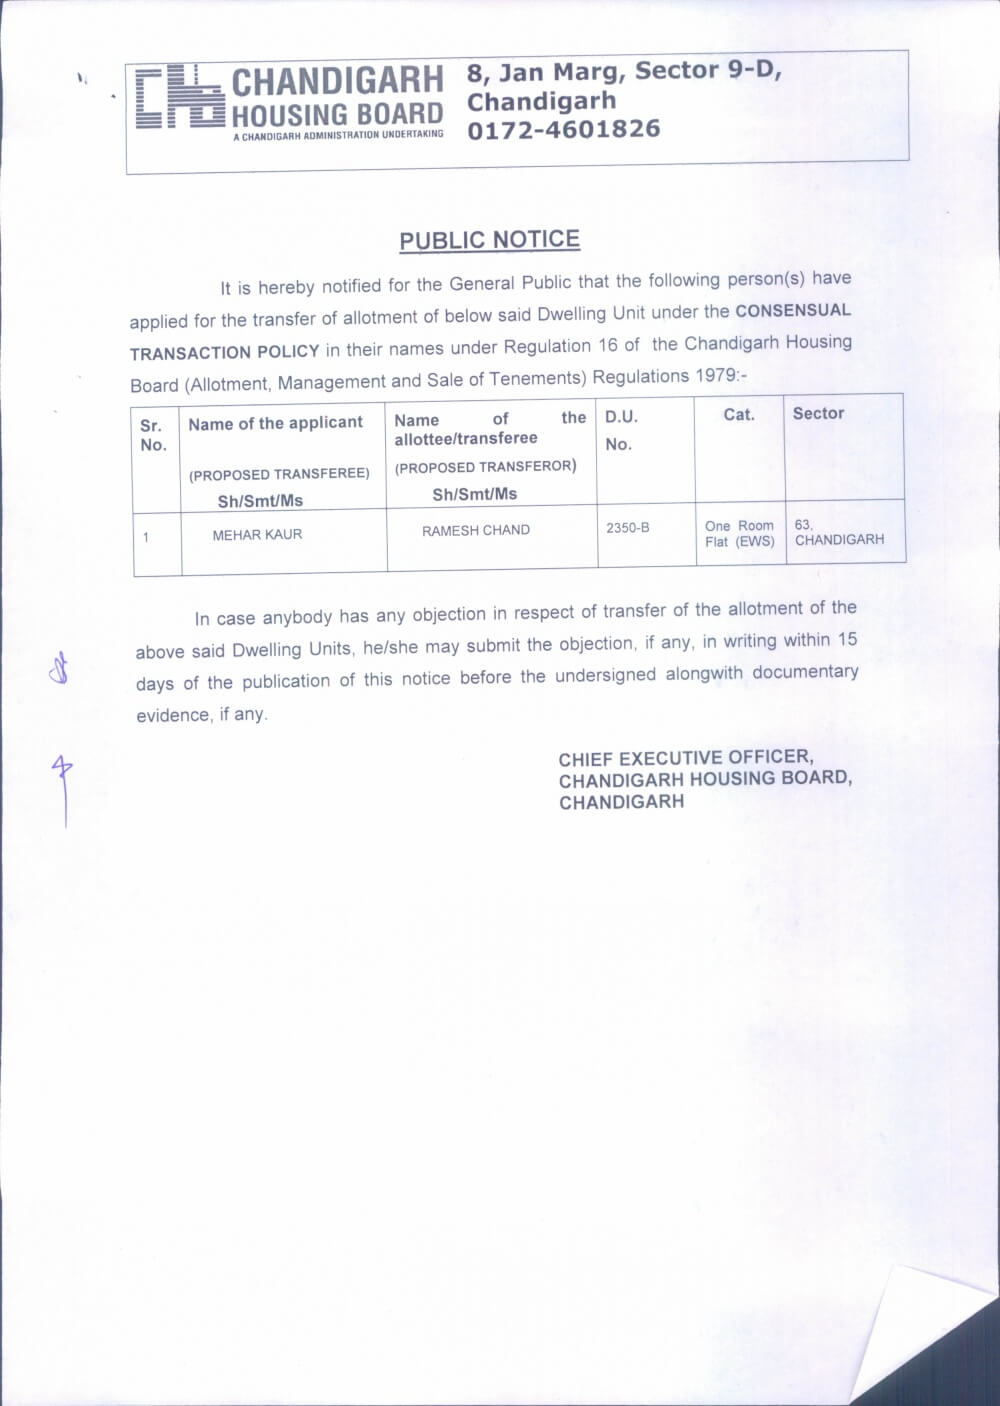 Transfer of D U  No  2350-B, Sec-63 on the basis of